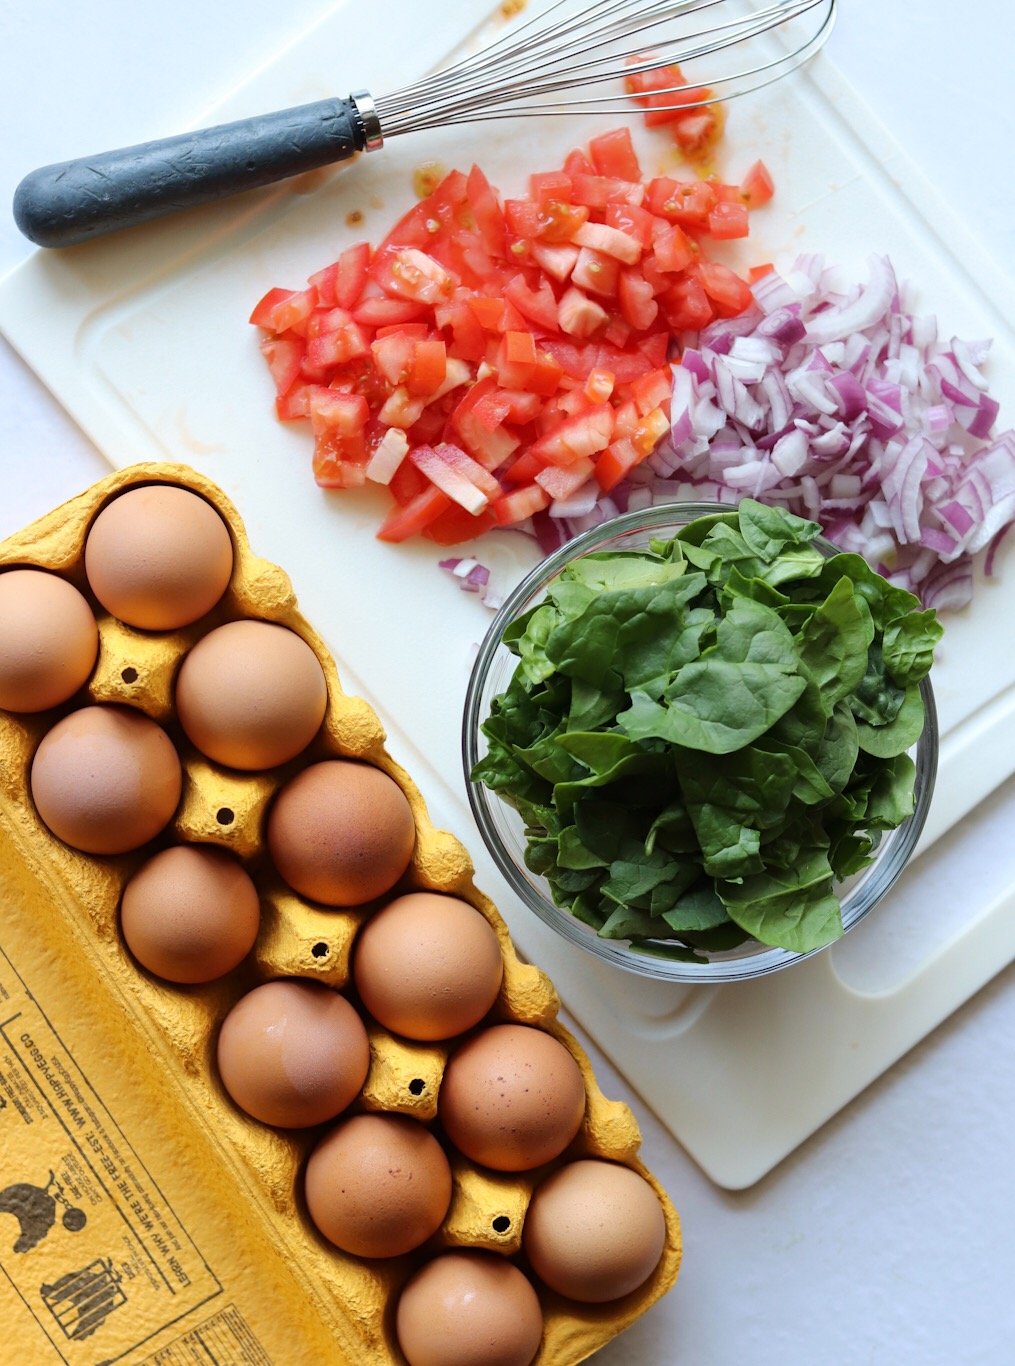 Casserole Ingredients: Eggs, a small glass bowl of baby spinach, and a plastic cutting board with diced onions and tomatoes.